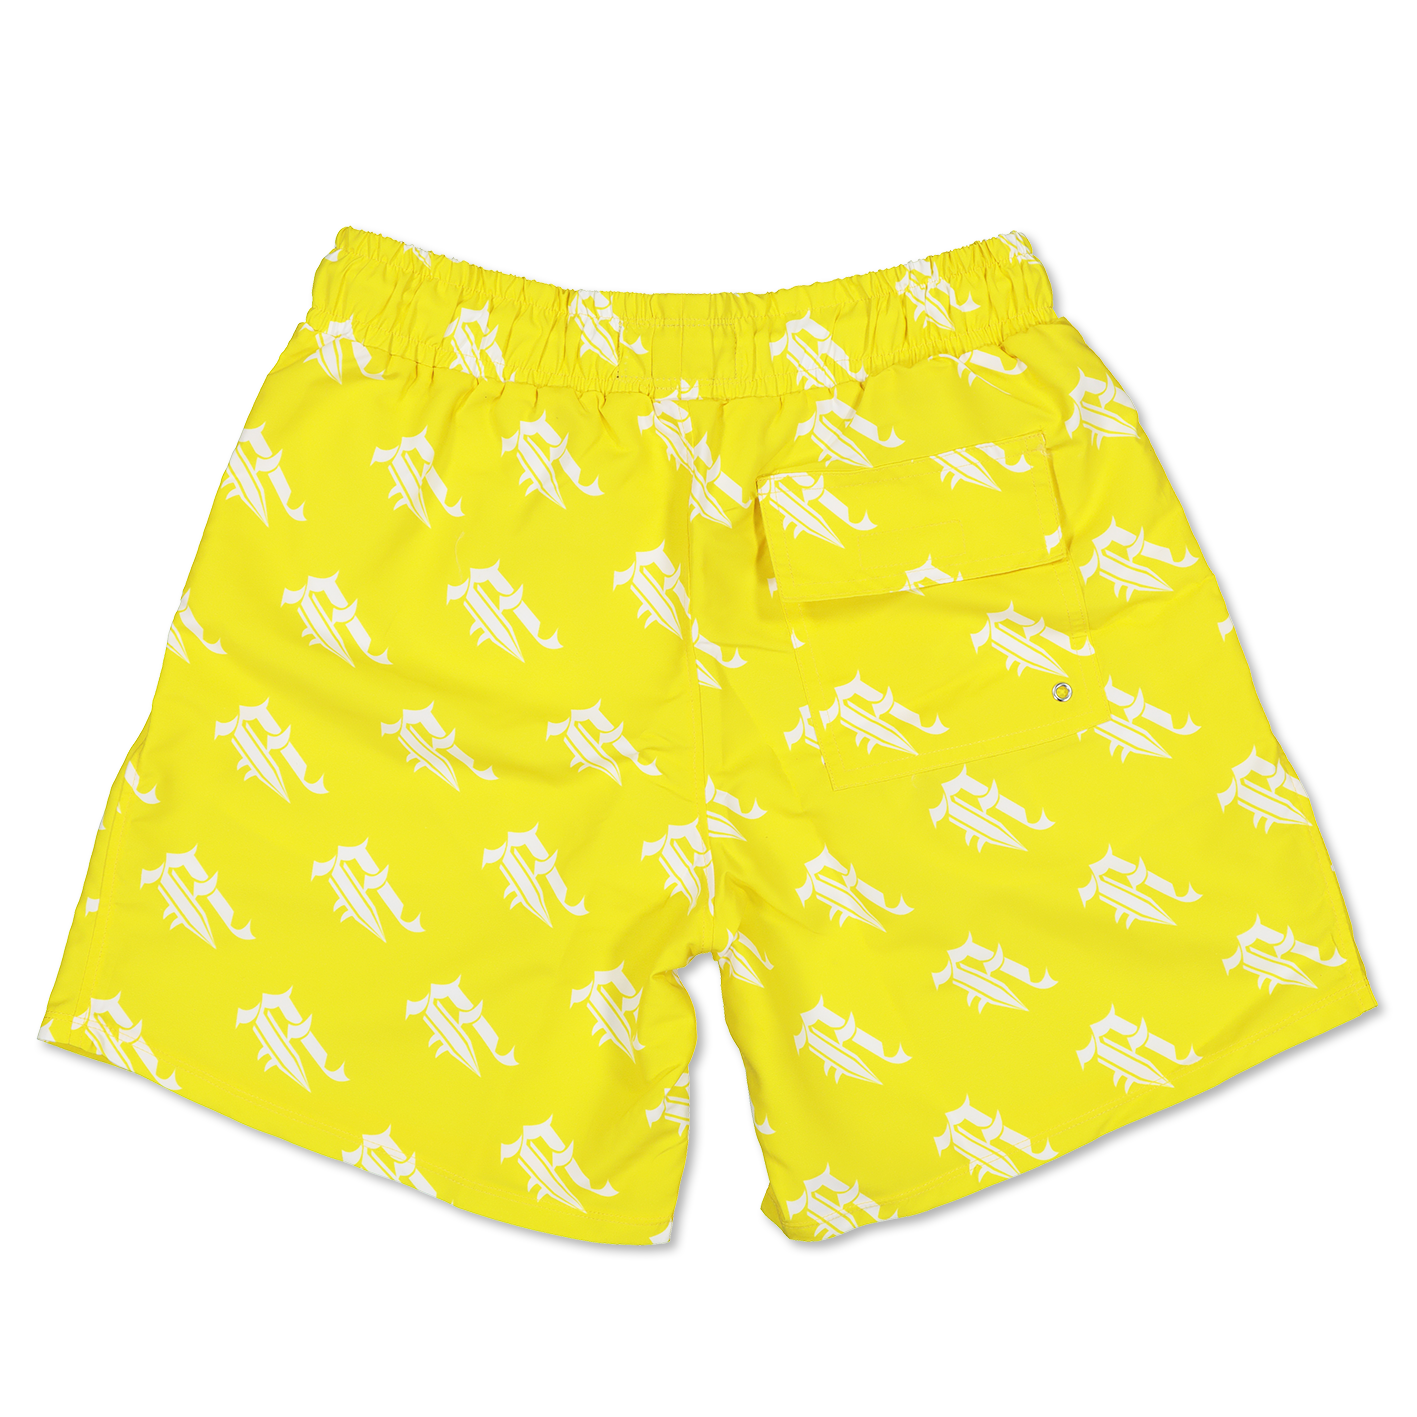 """A"" LOGO SWIM SHORTS (YELLOW)"